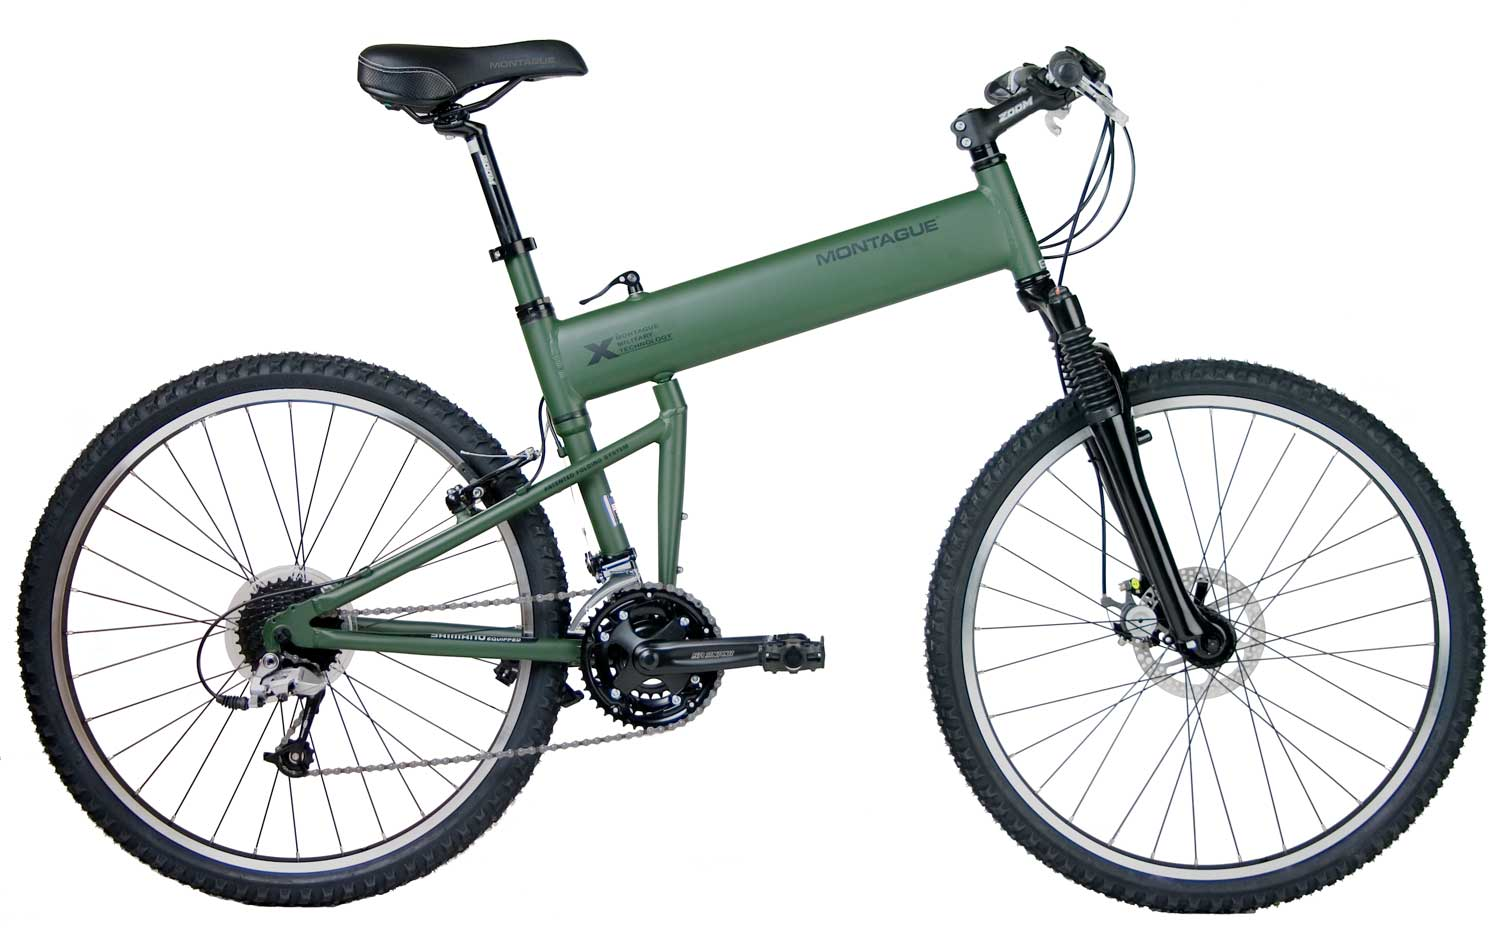 2006 Paratrooper Mountain Folding Bike